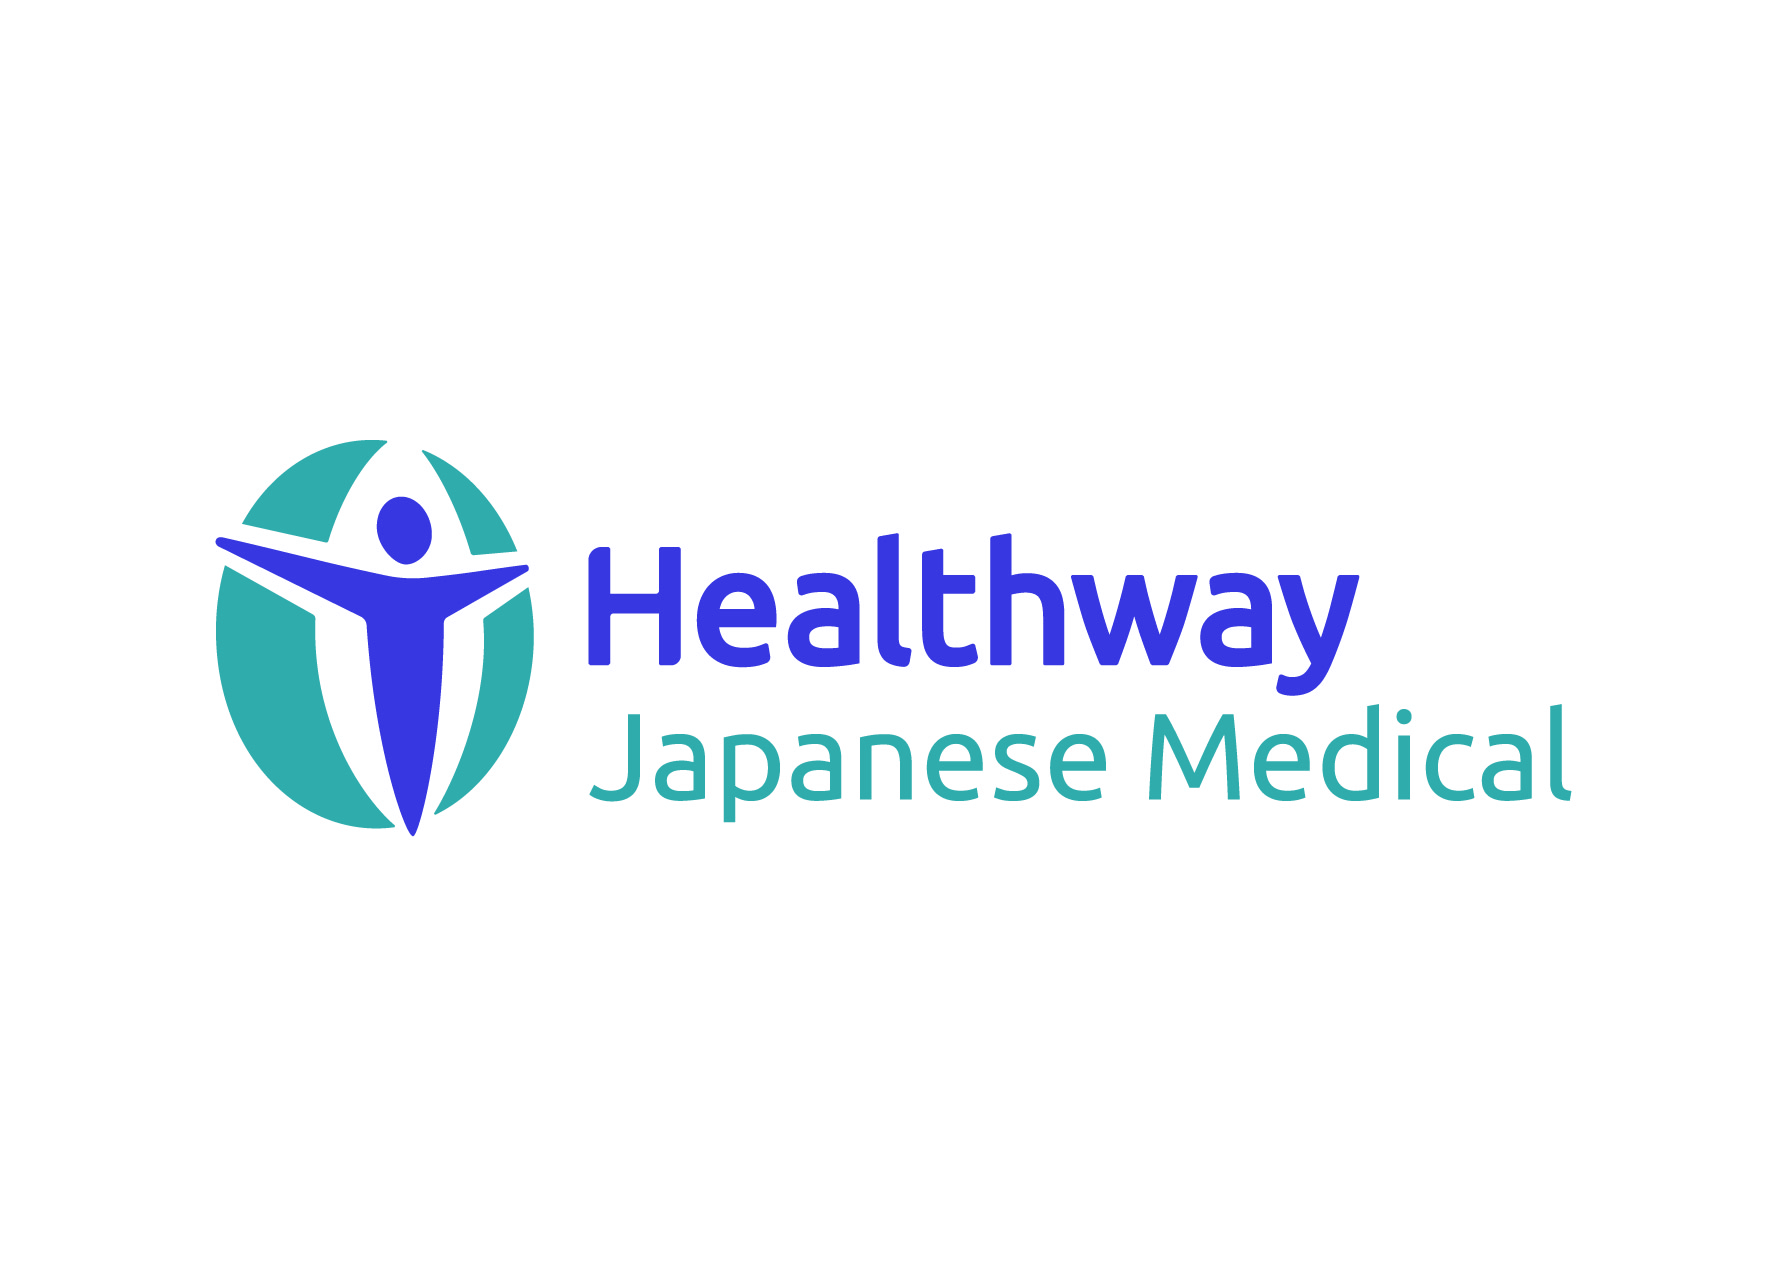 Healthway Japanese Medical